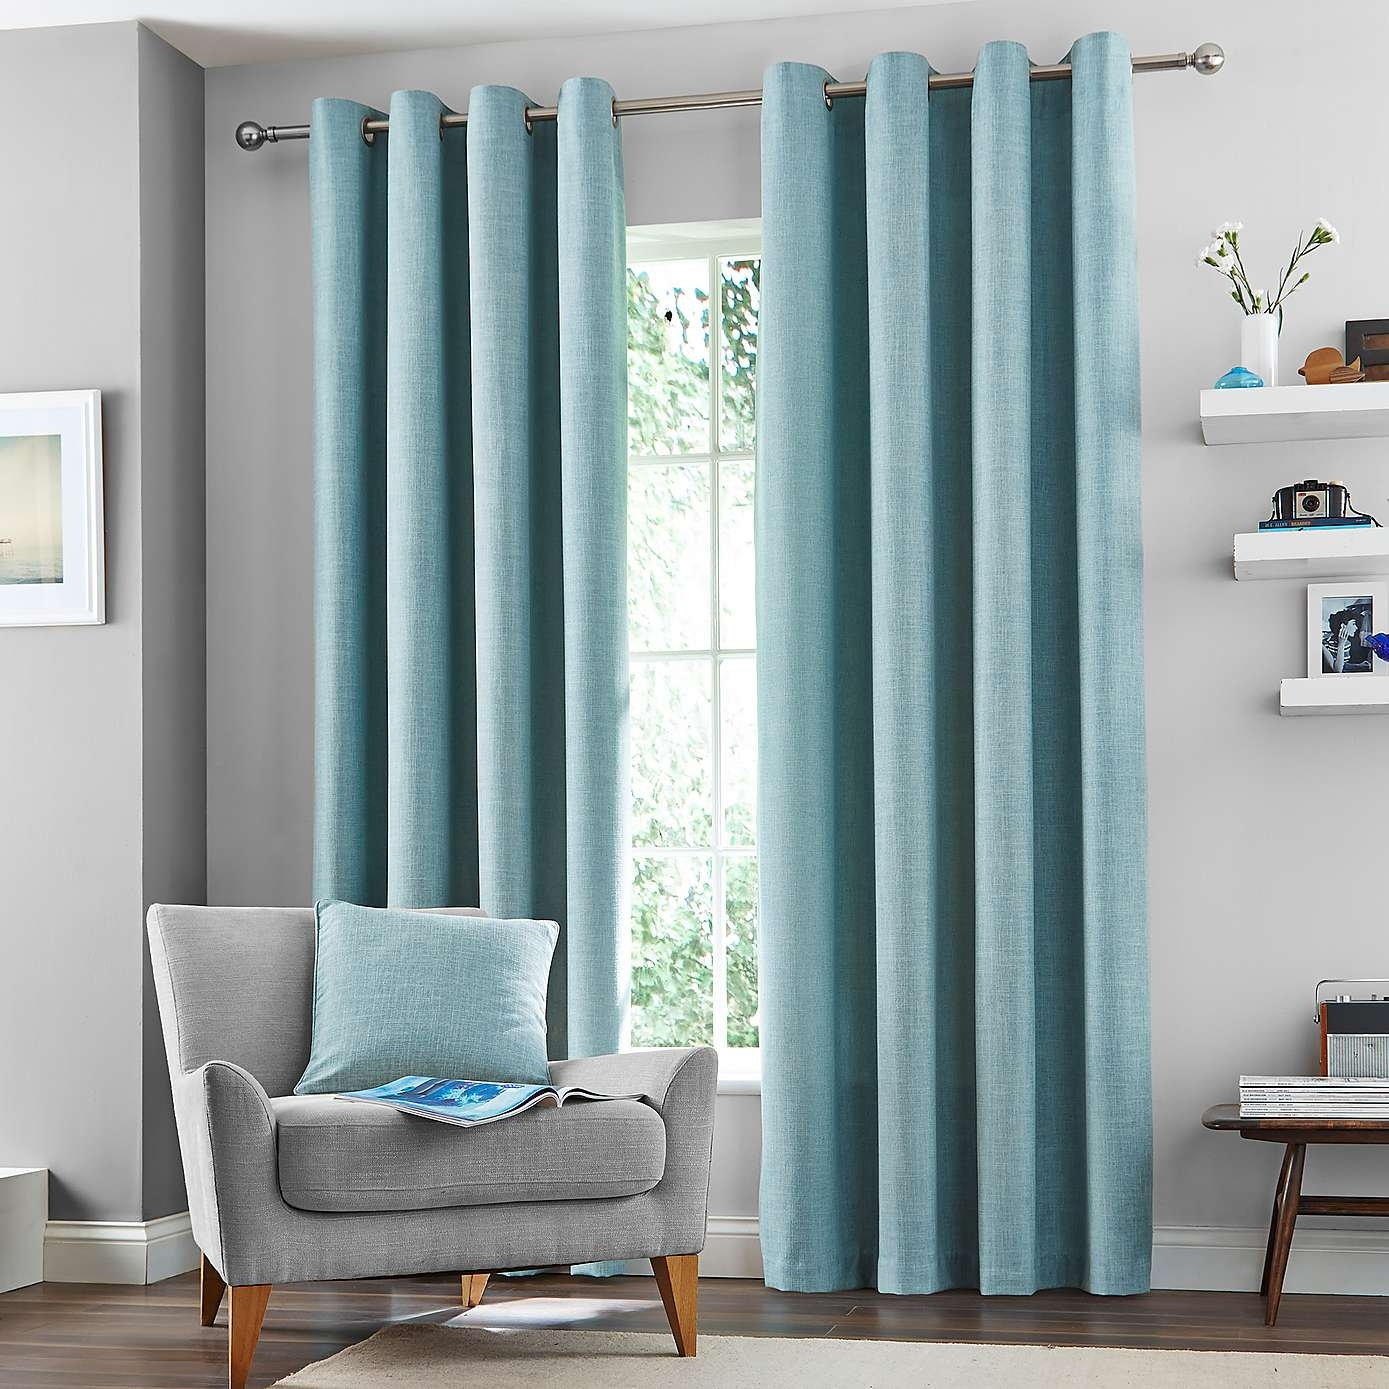 Duck Egg Vermont Lined Eyelet Curtains Dunelm Curtain Ideas In Duck Egg Blue Blackout Curtains (View 3 of 15)